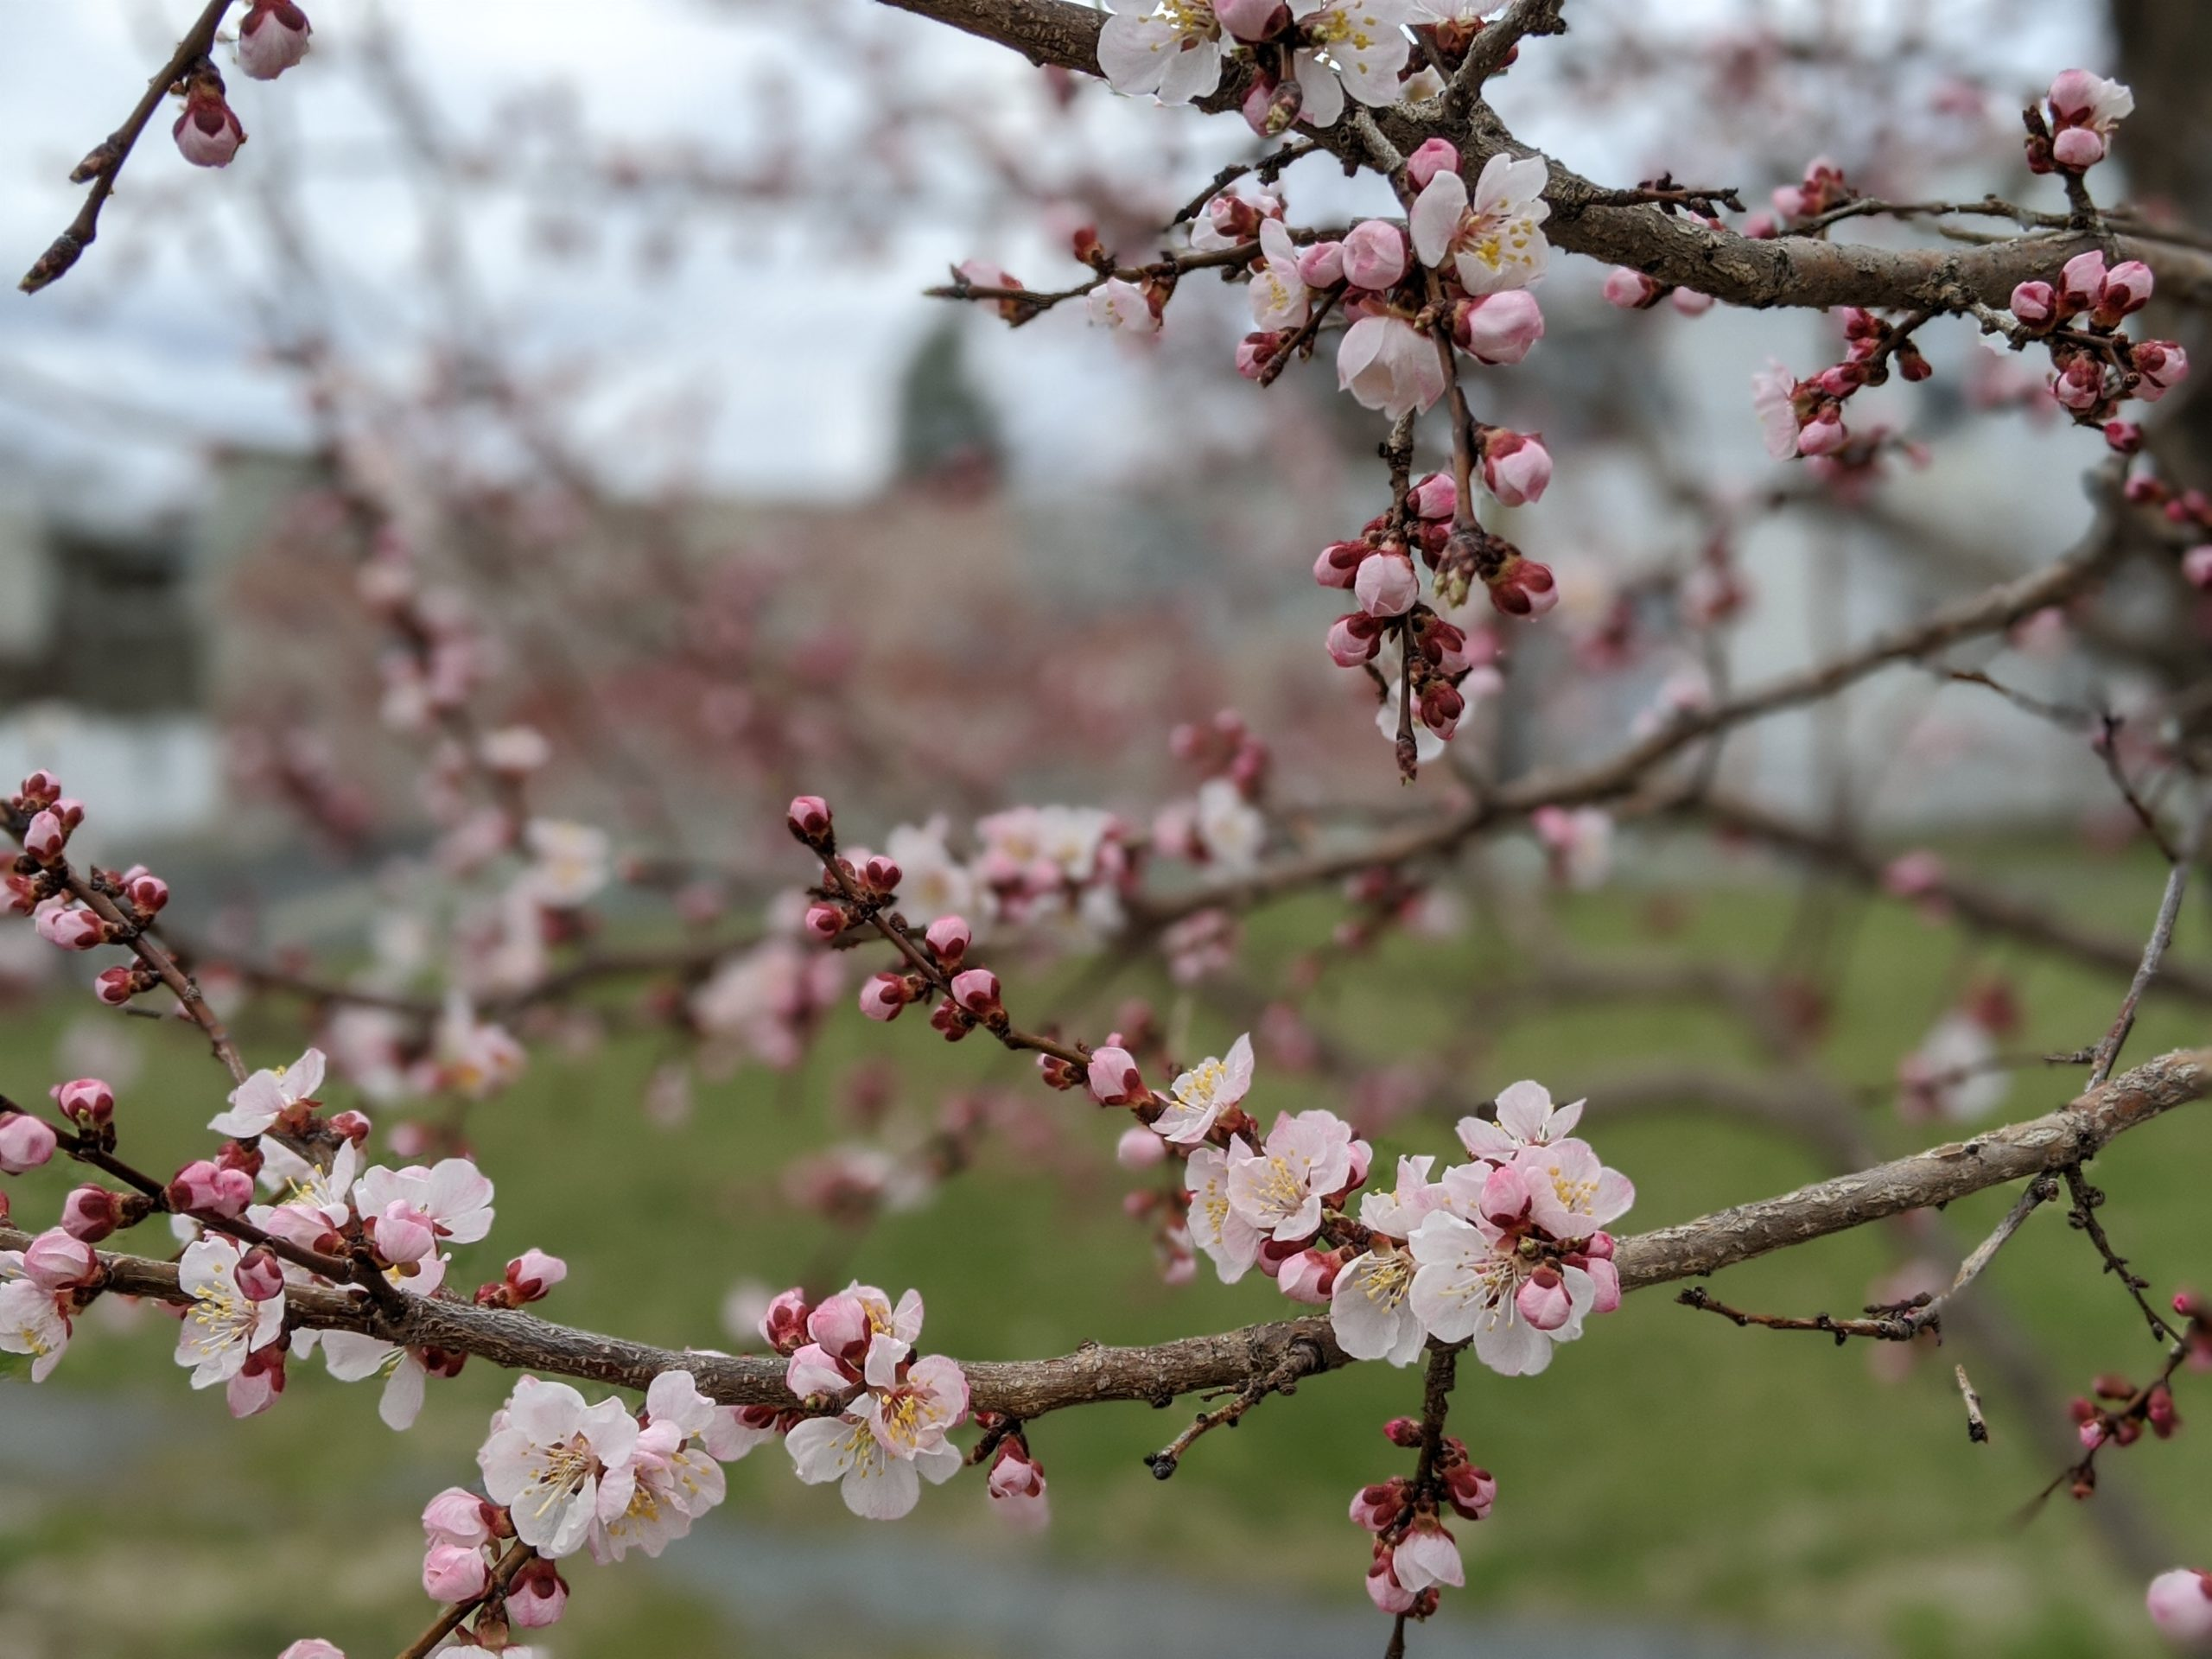 Apricots blossoming in Collard City Growers gardens